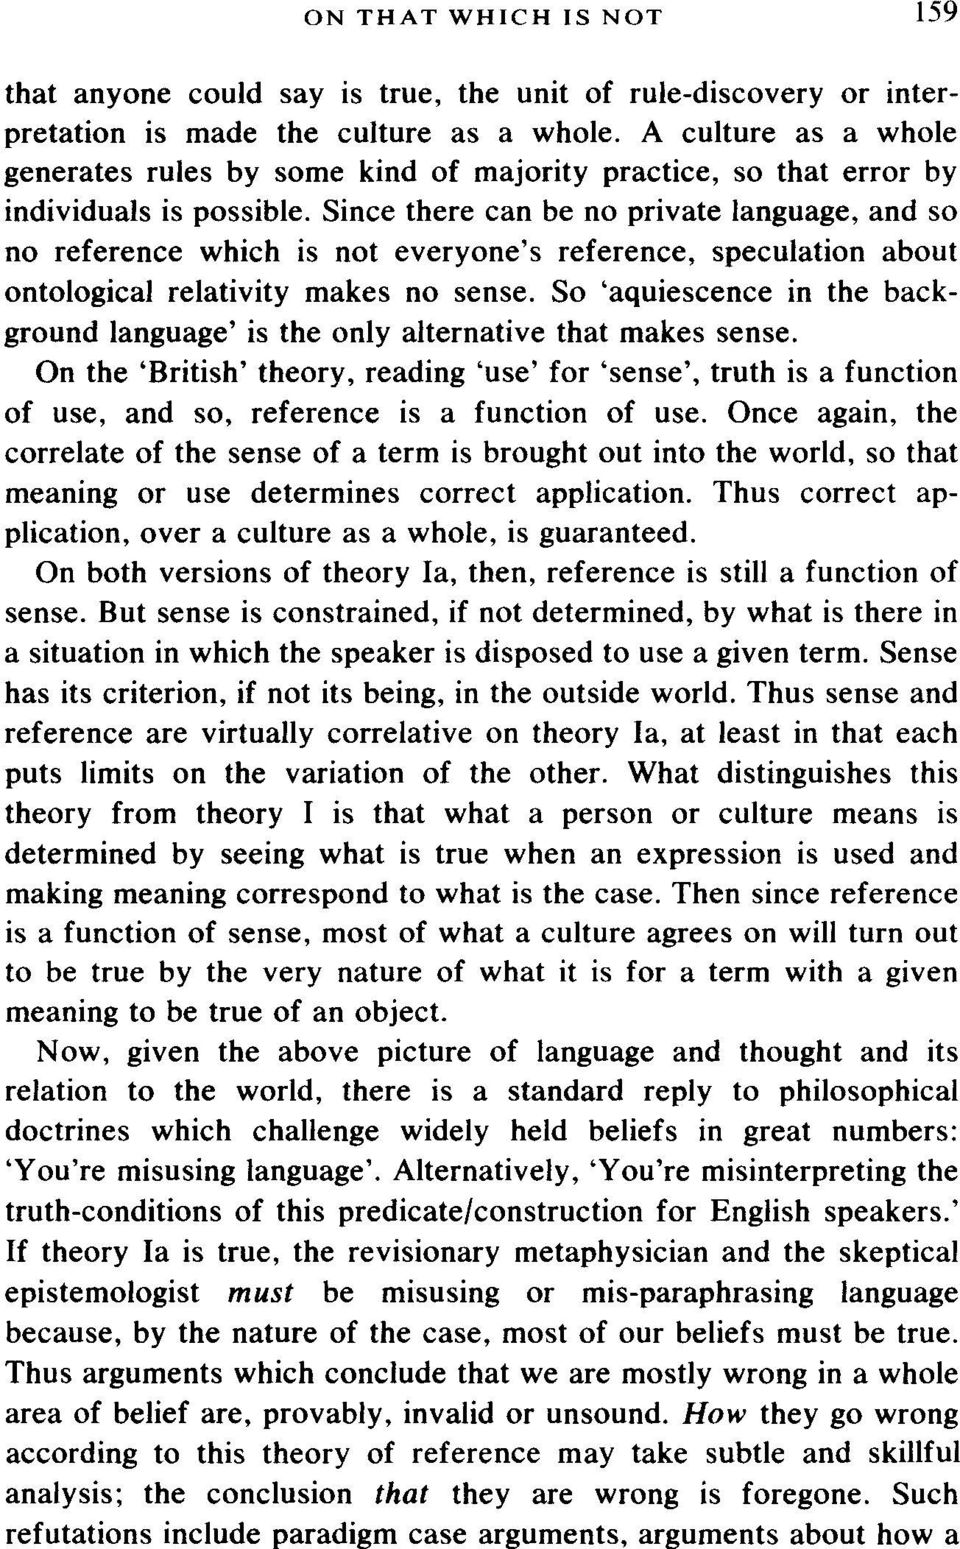 Since there can be no private language, and so no reference which is not everyone's reference, speculation about ontological relativity makes no sense.